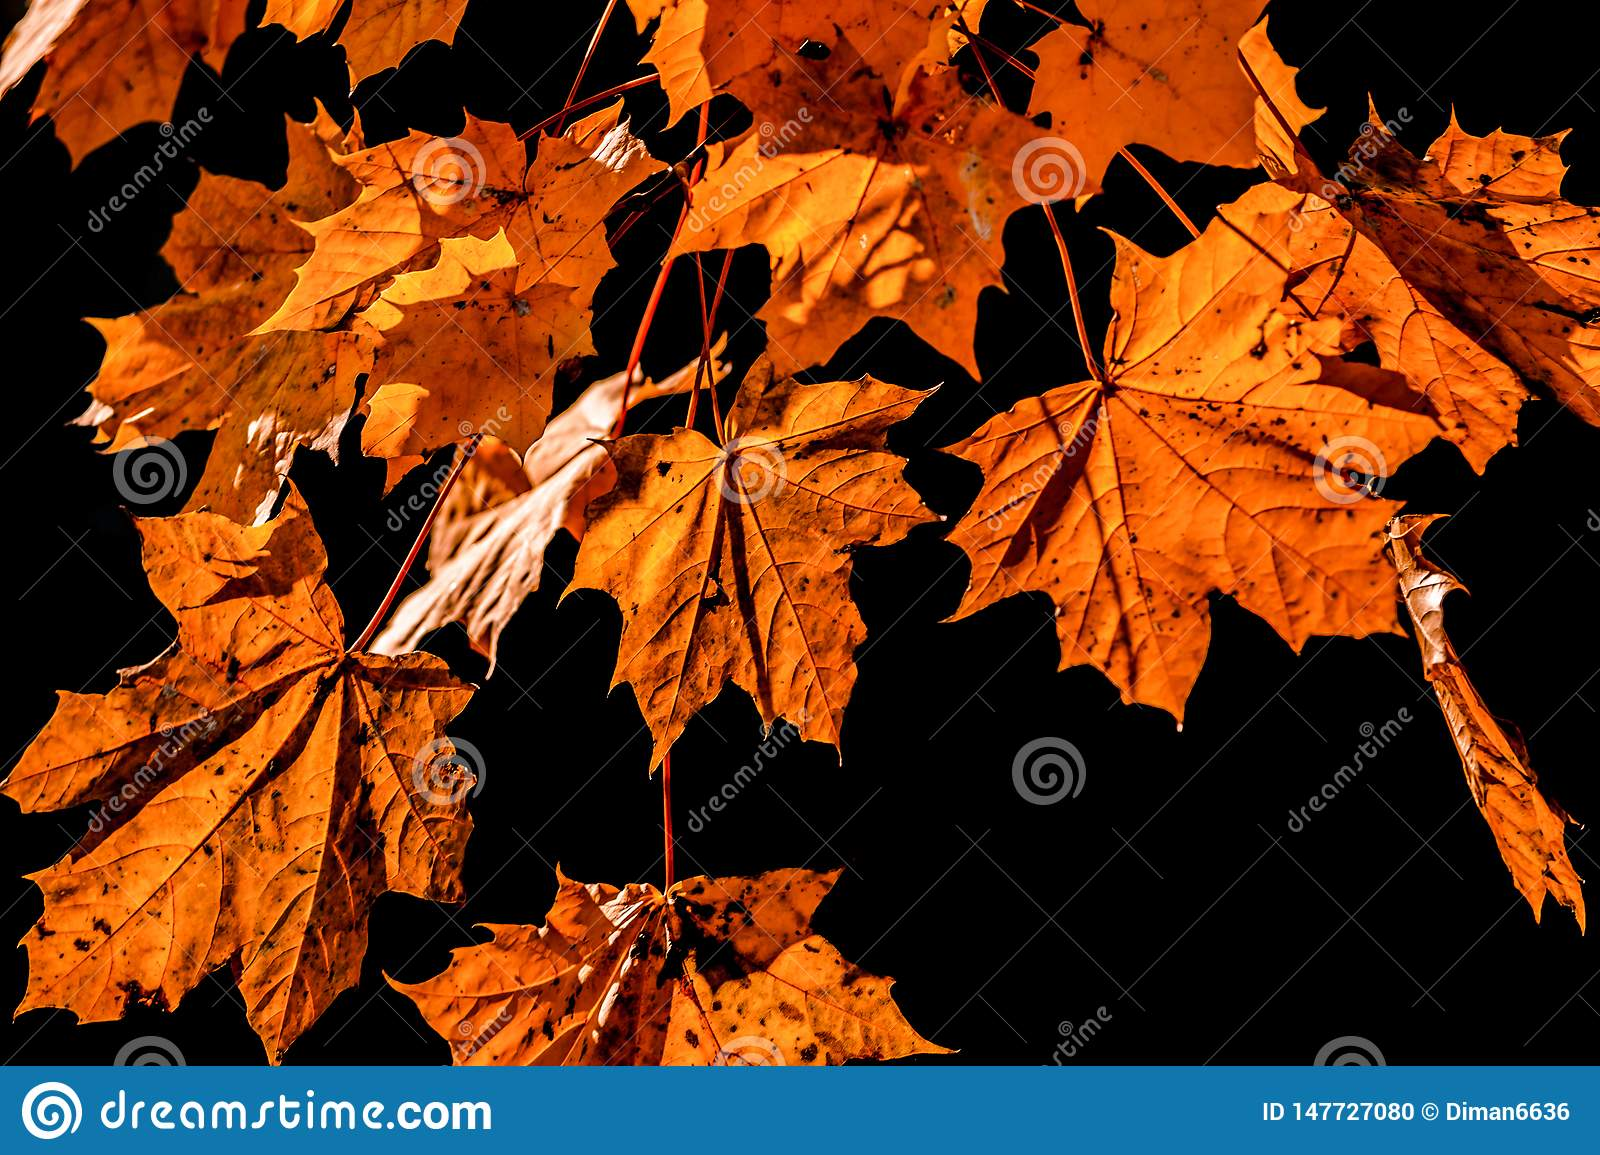 Yellow leaves on black background. Falling leaf